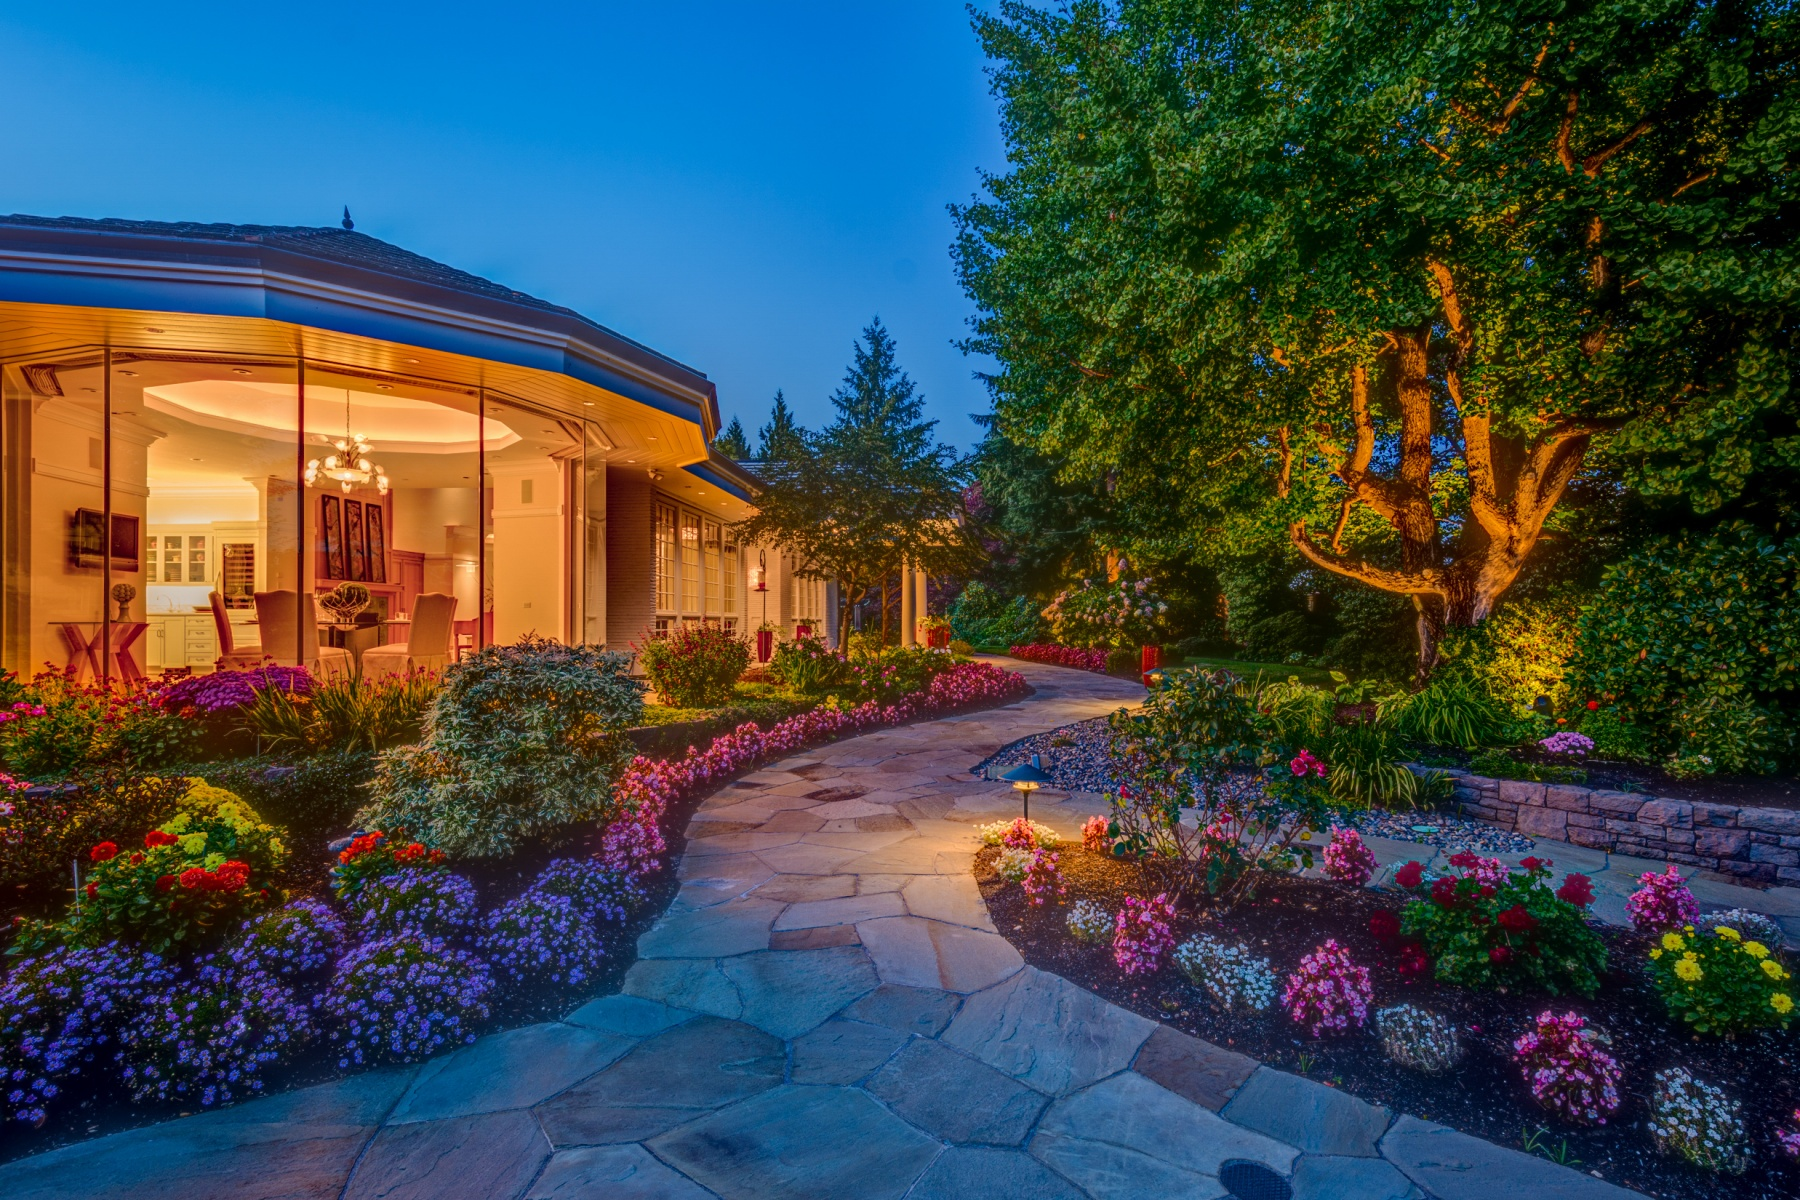 Single Family Home for Sale at Unparalleled Luxury in the Heart of the City 4712 NW FRANKLIN ST Vancouver, Washington 98663 United States